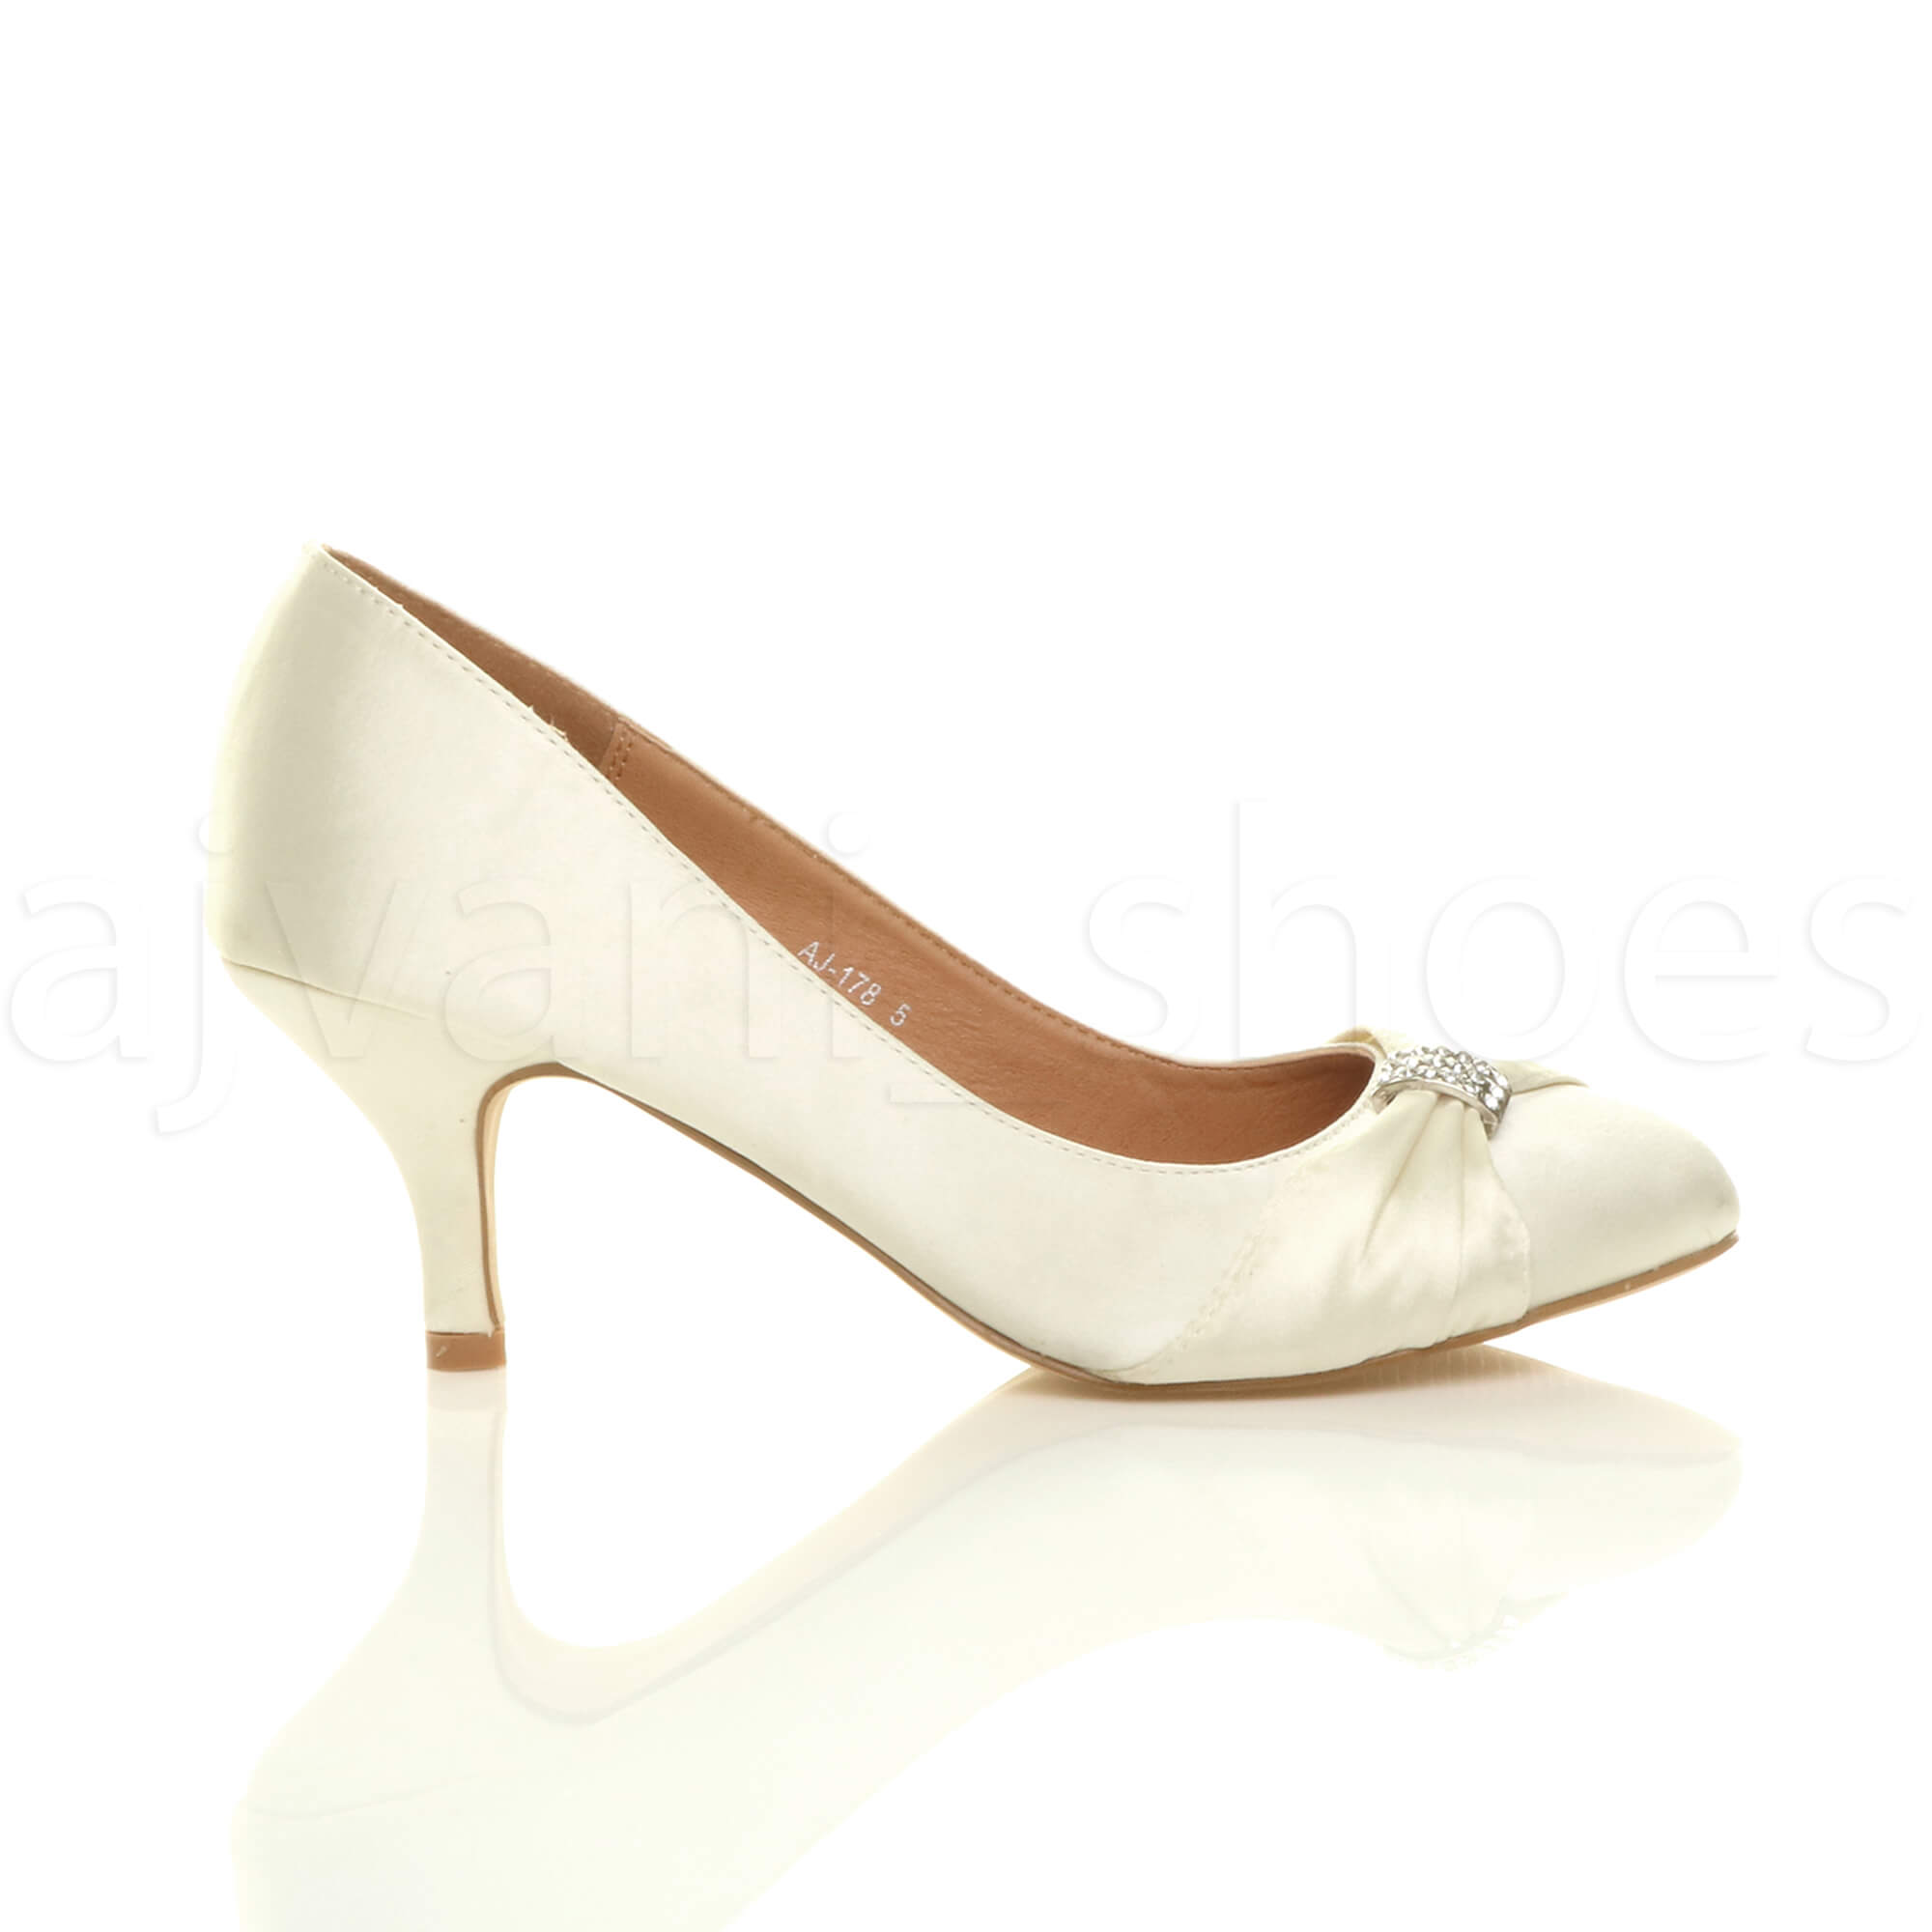 WOMENS-LADIES-MID-HEEL-RUCHED-DIAMANTE-WEDDING-PROM-EVENING-COURT-SHOES-SIZE thumbnail 35